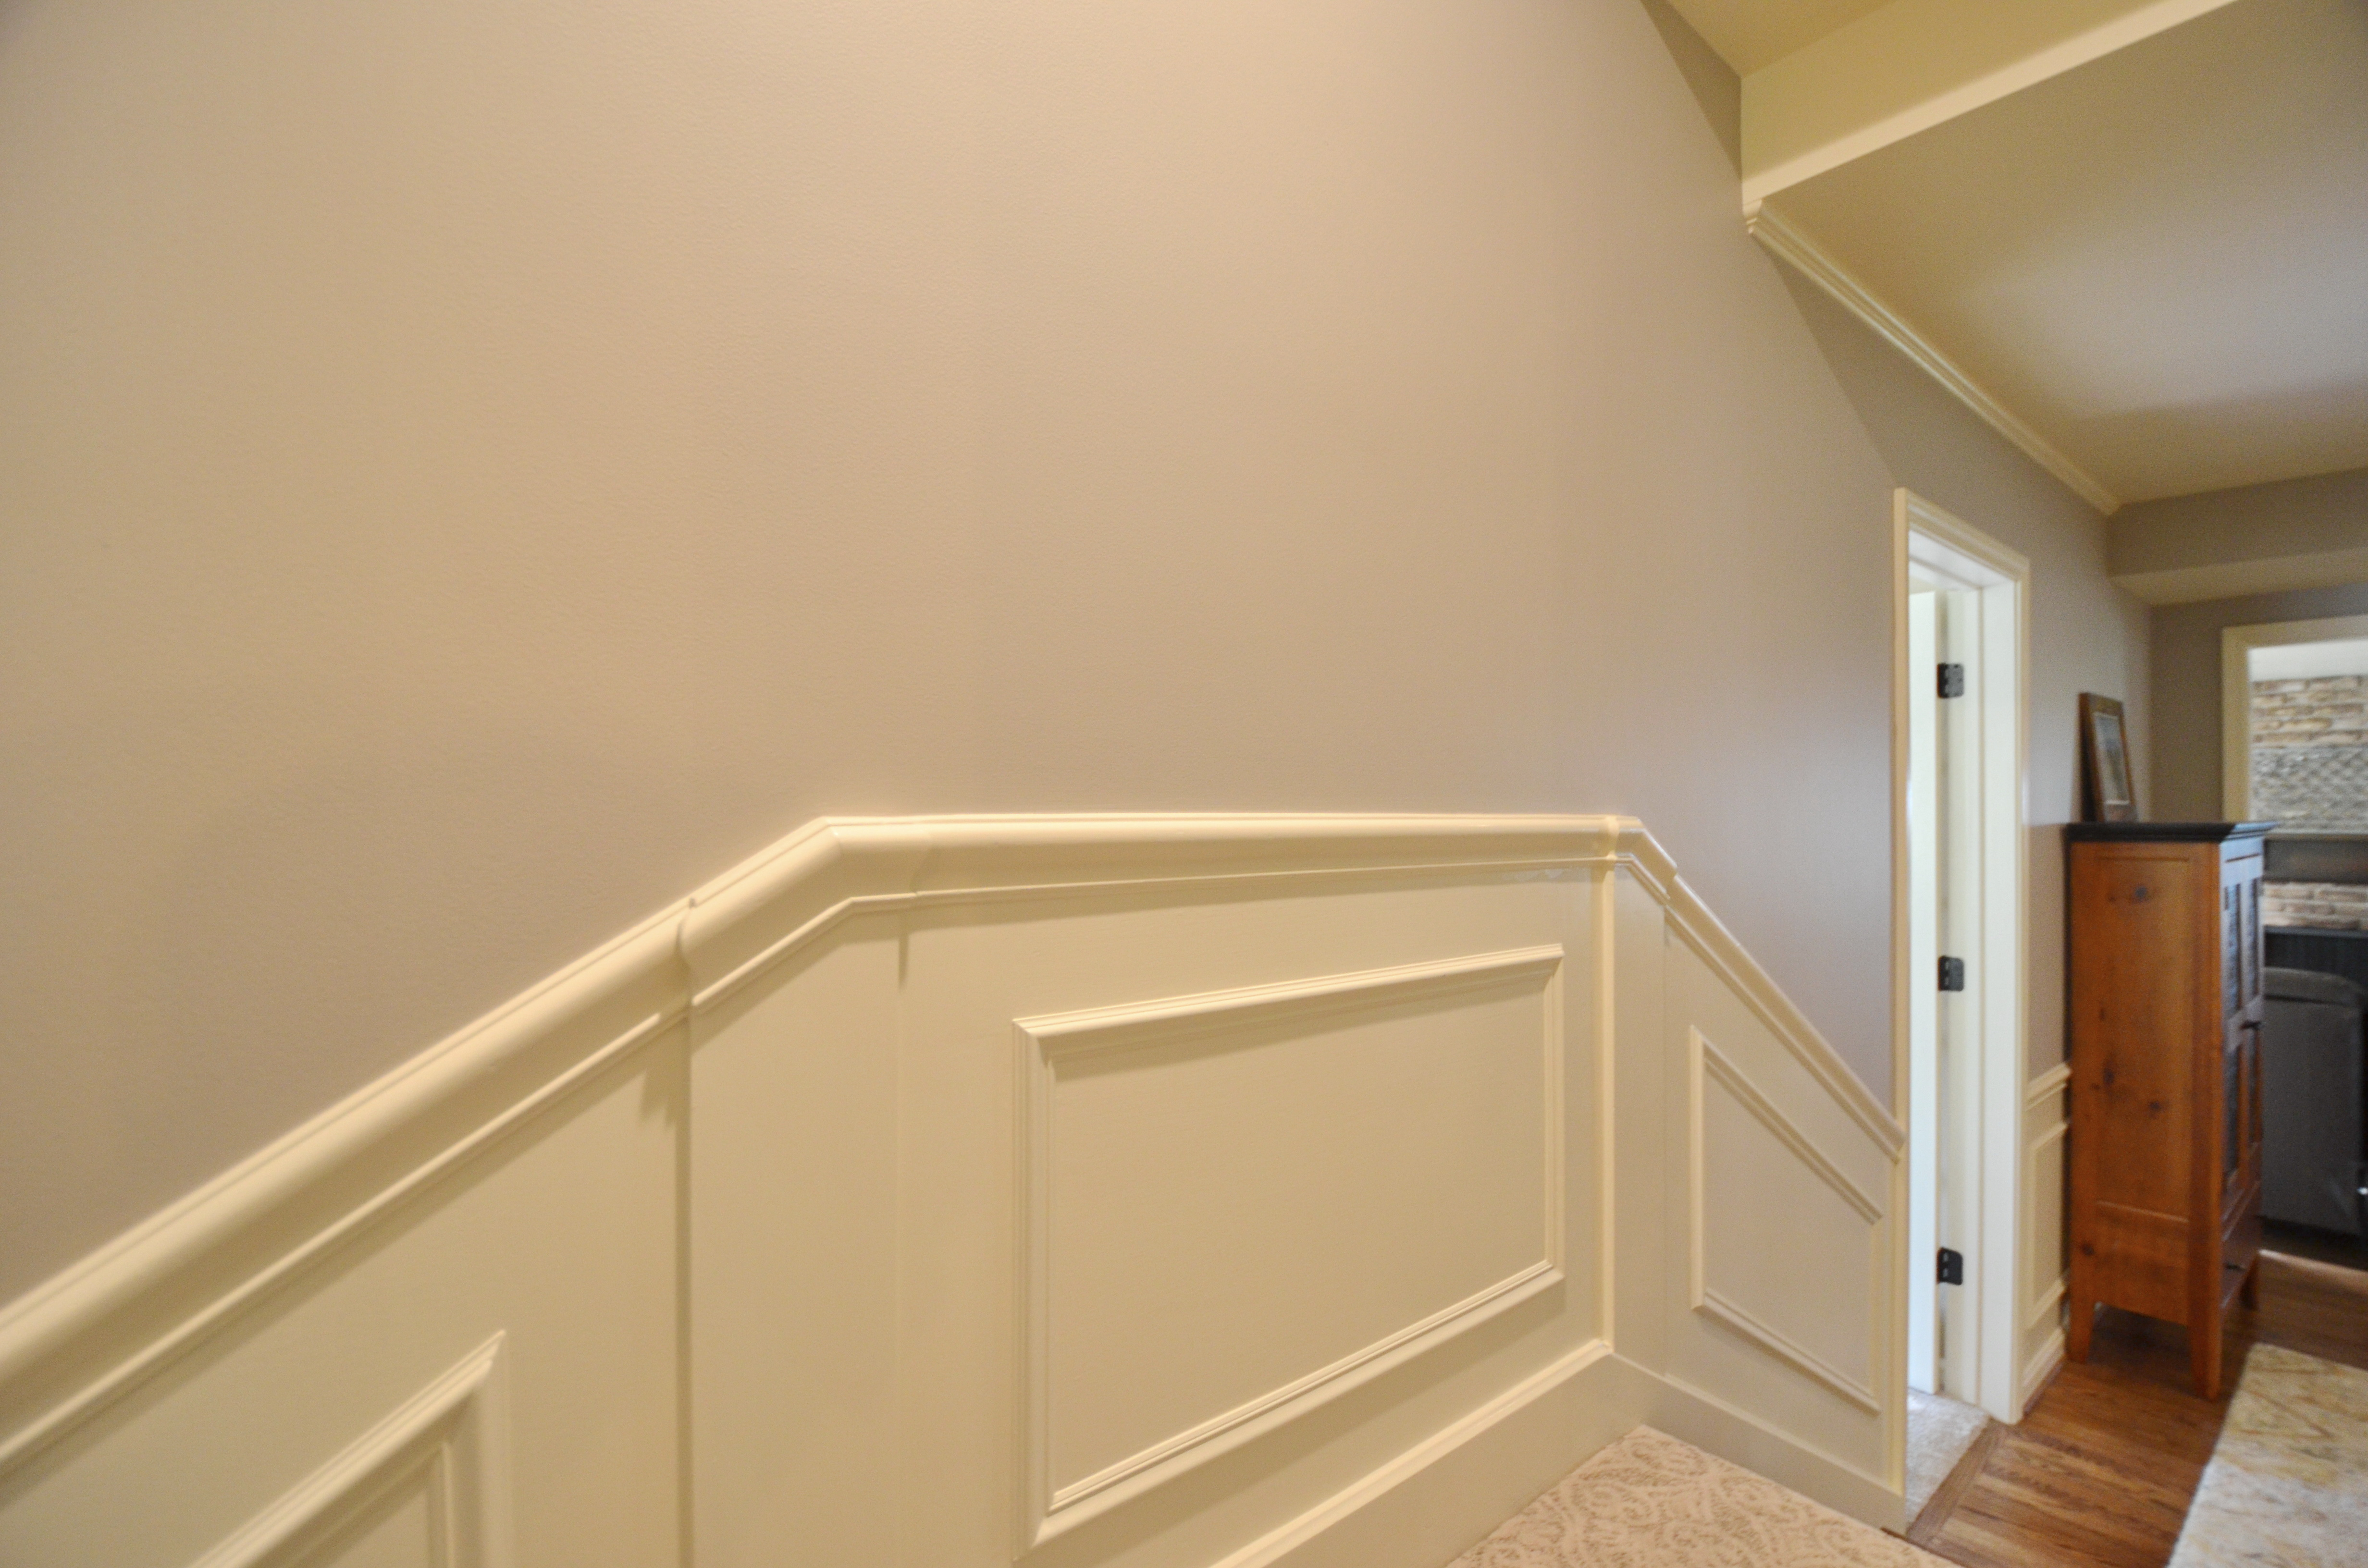 Wall molding added to match existing